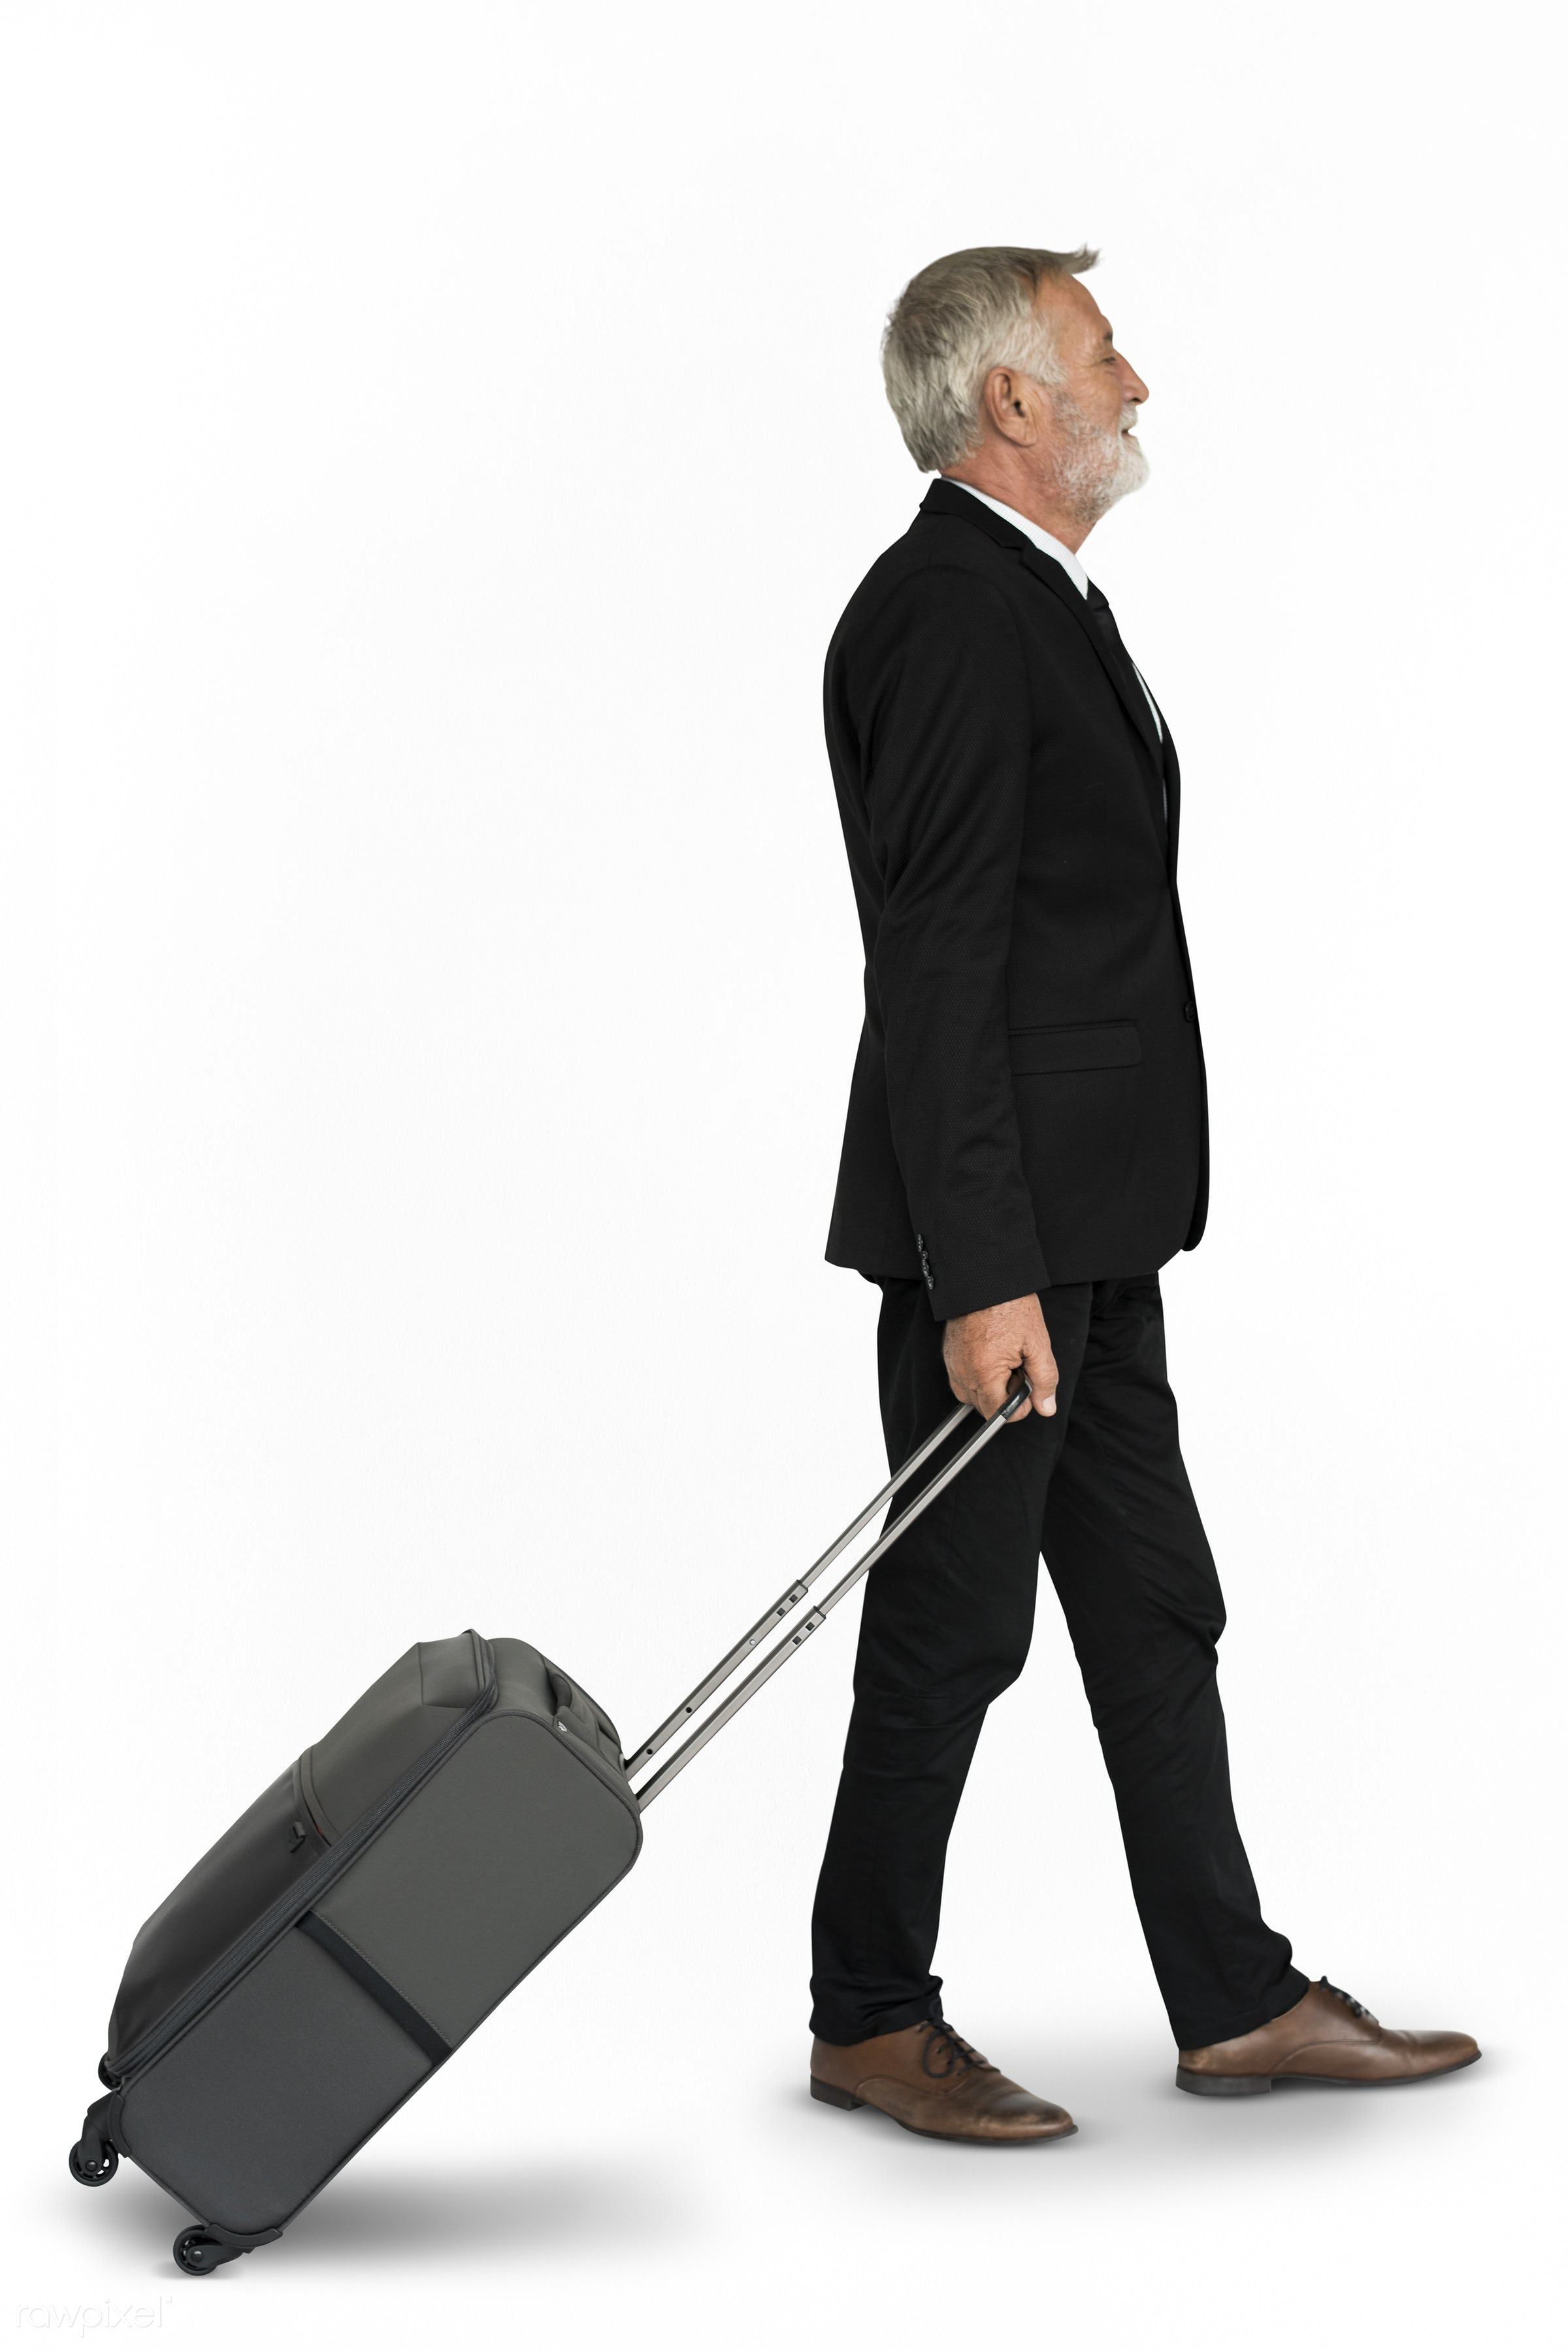 studio, face, person, isolated on white, travel, people, business, businessman, trip, man, isolated, suitcase, male, white,...